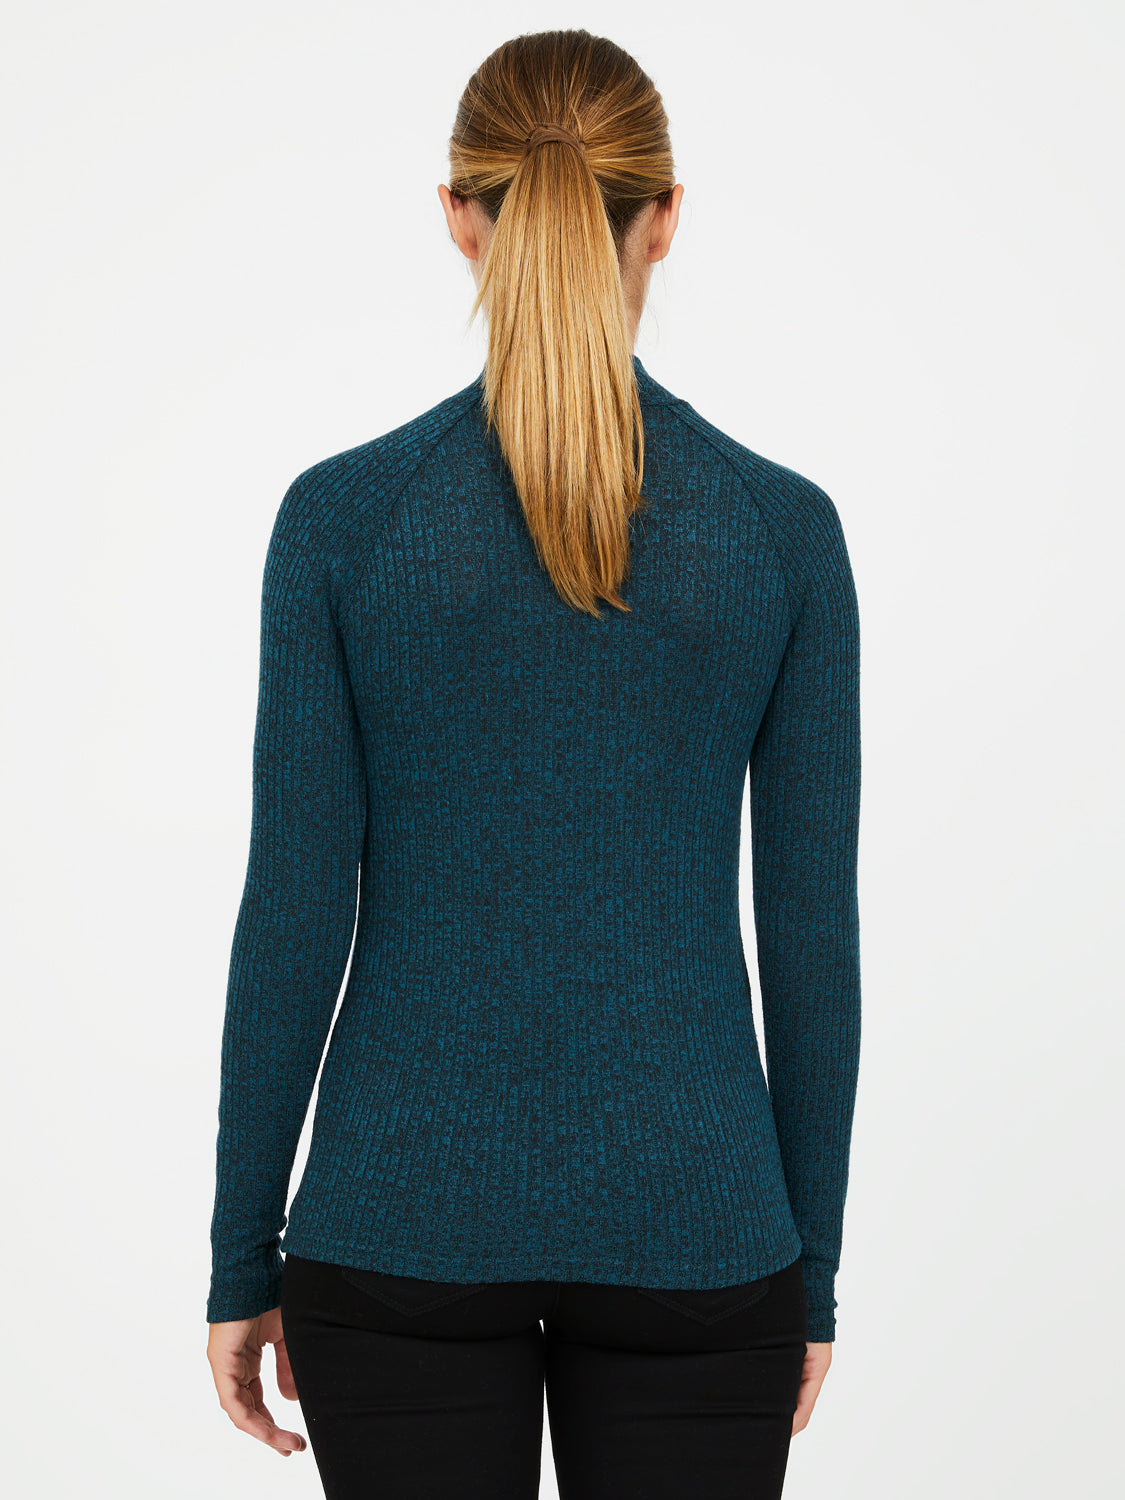 Brushed Mélange Rib Knit Top